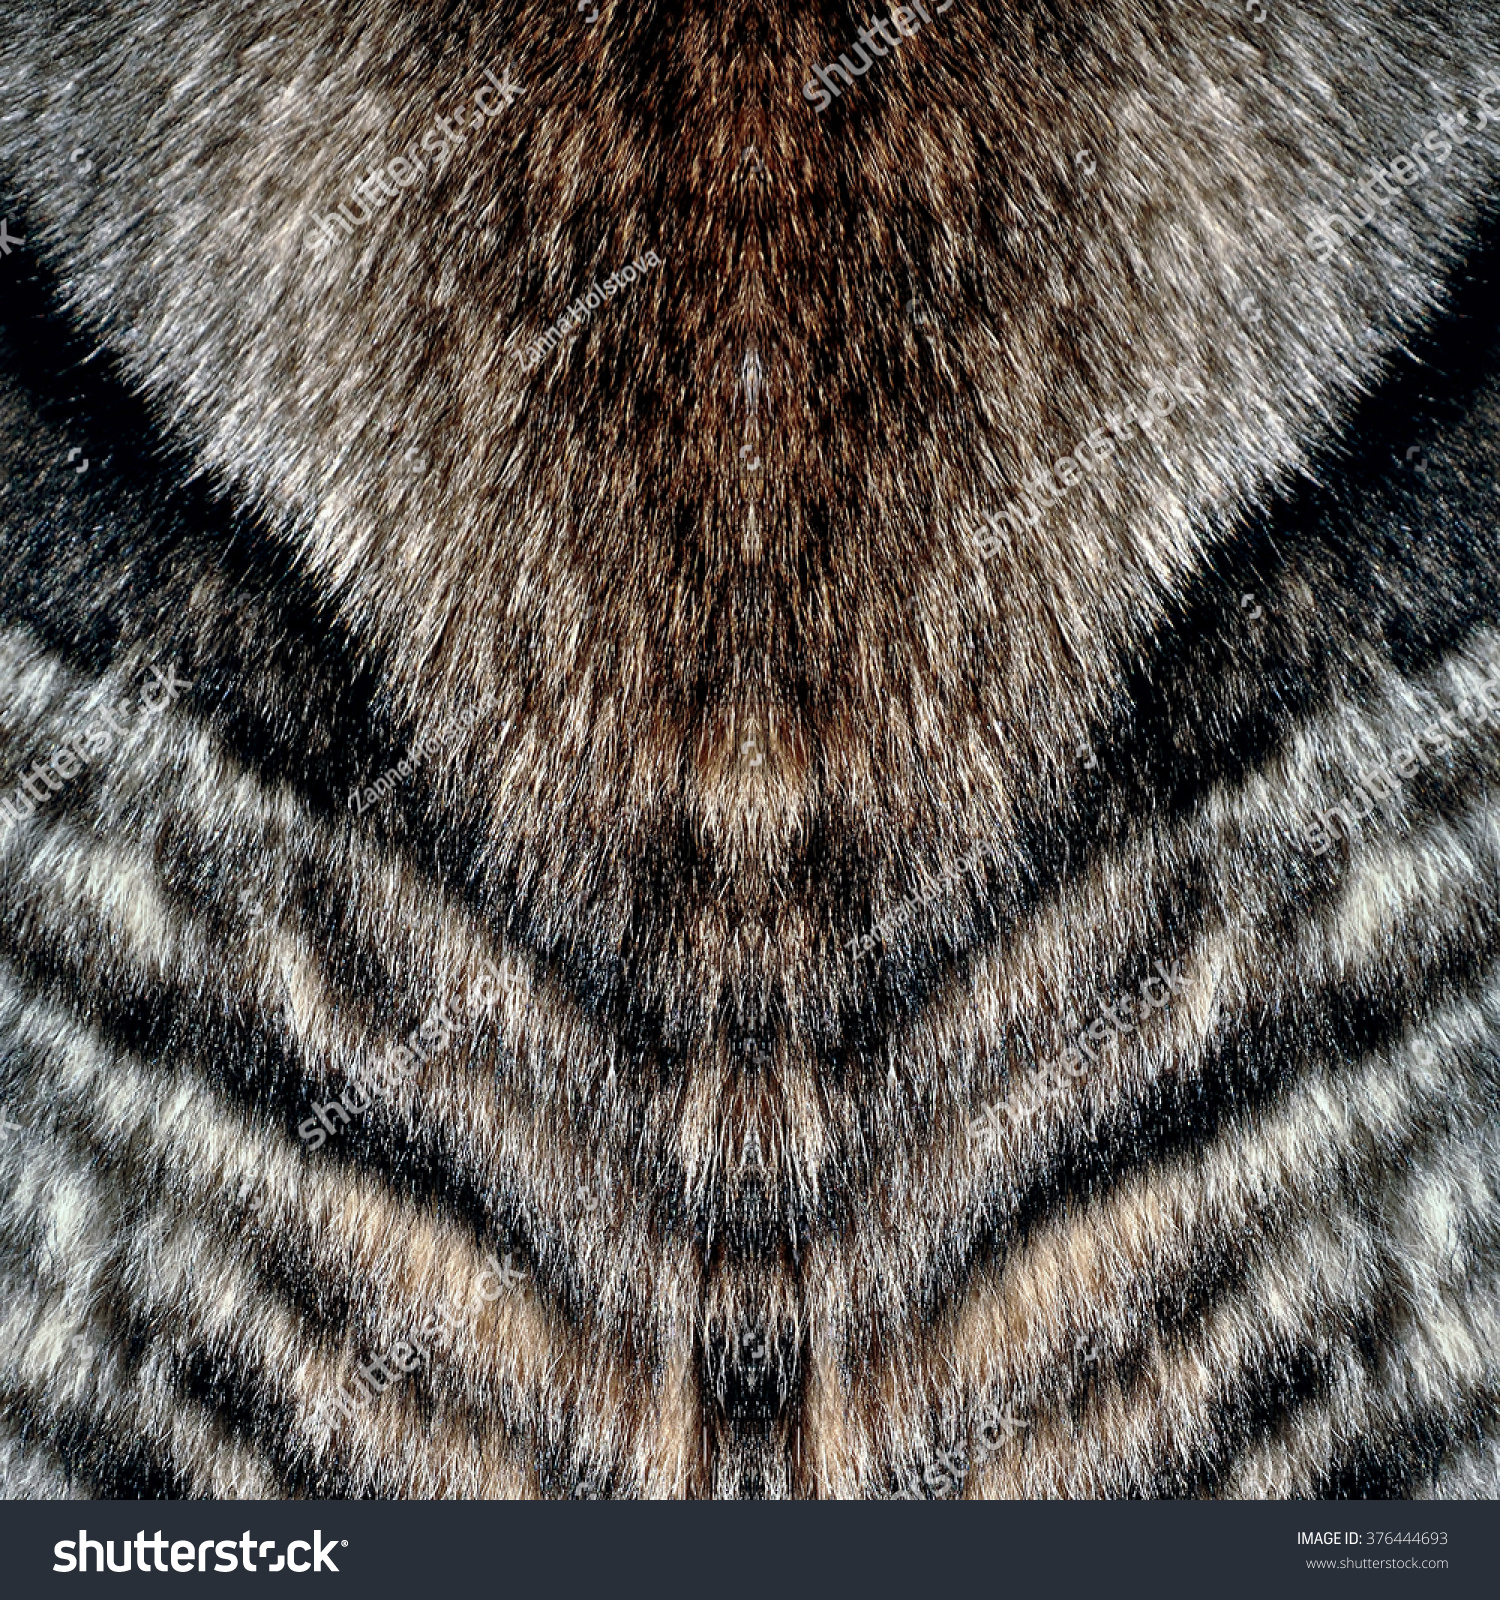 Royalty-free Wolf fur Wolf fur texture for background ...